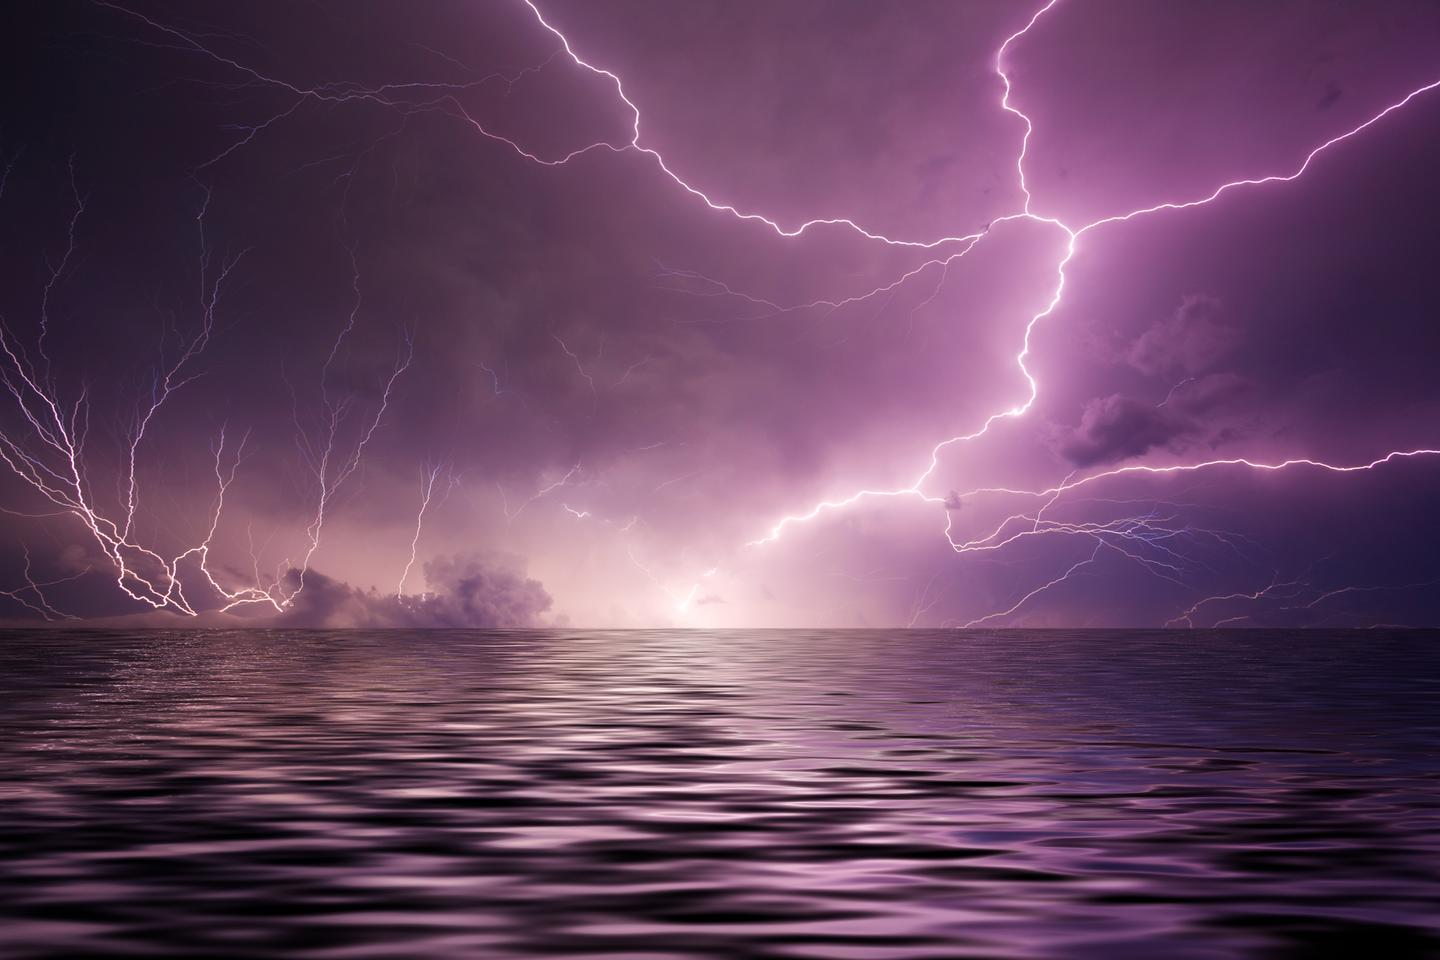 A new study suggests lightning strikes produced a vital element to kickstart life on Earth